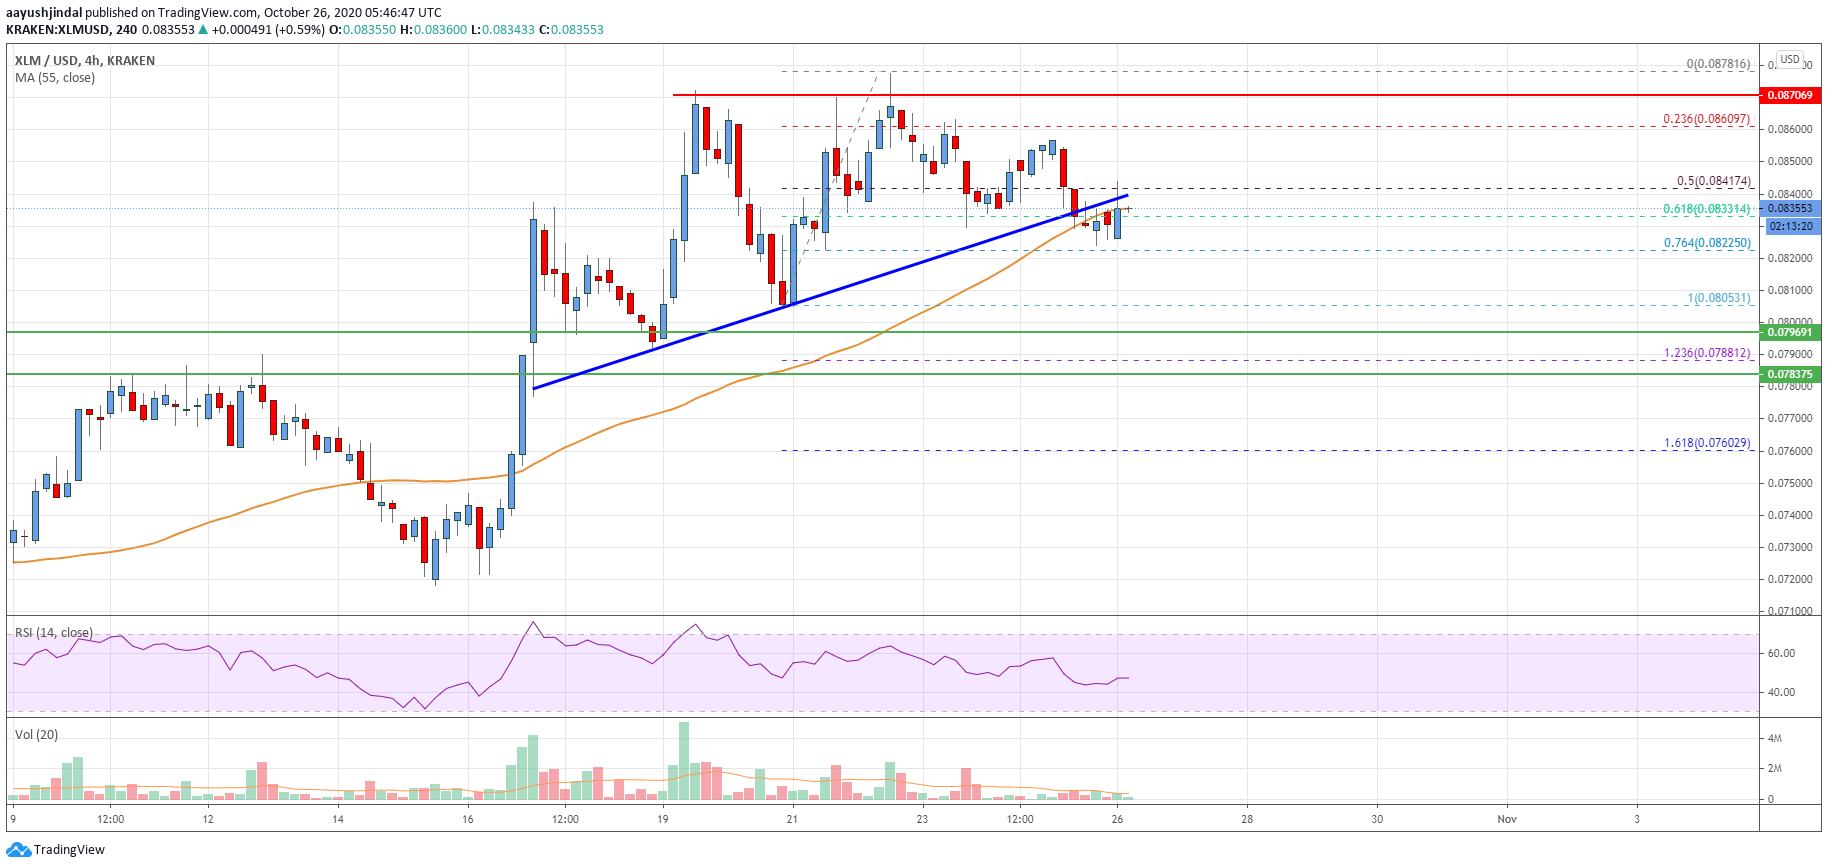 Stellar Lumen (XLM) Price Could Correct Lower, $0.08 Holds The Key